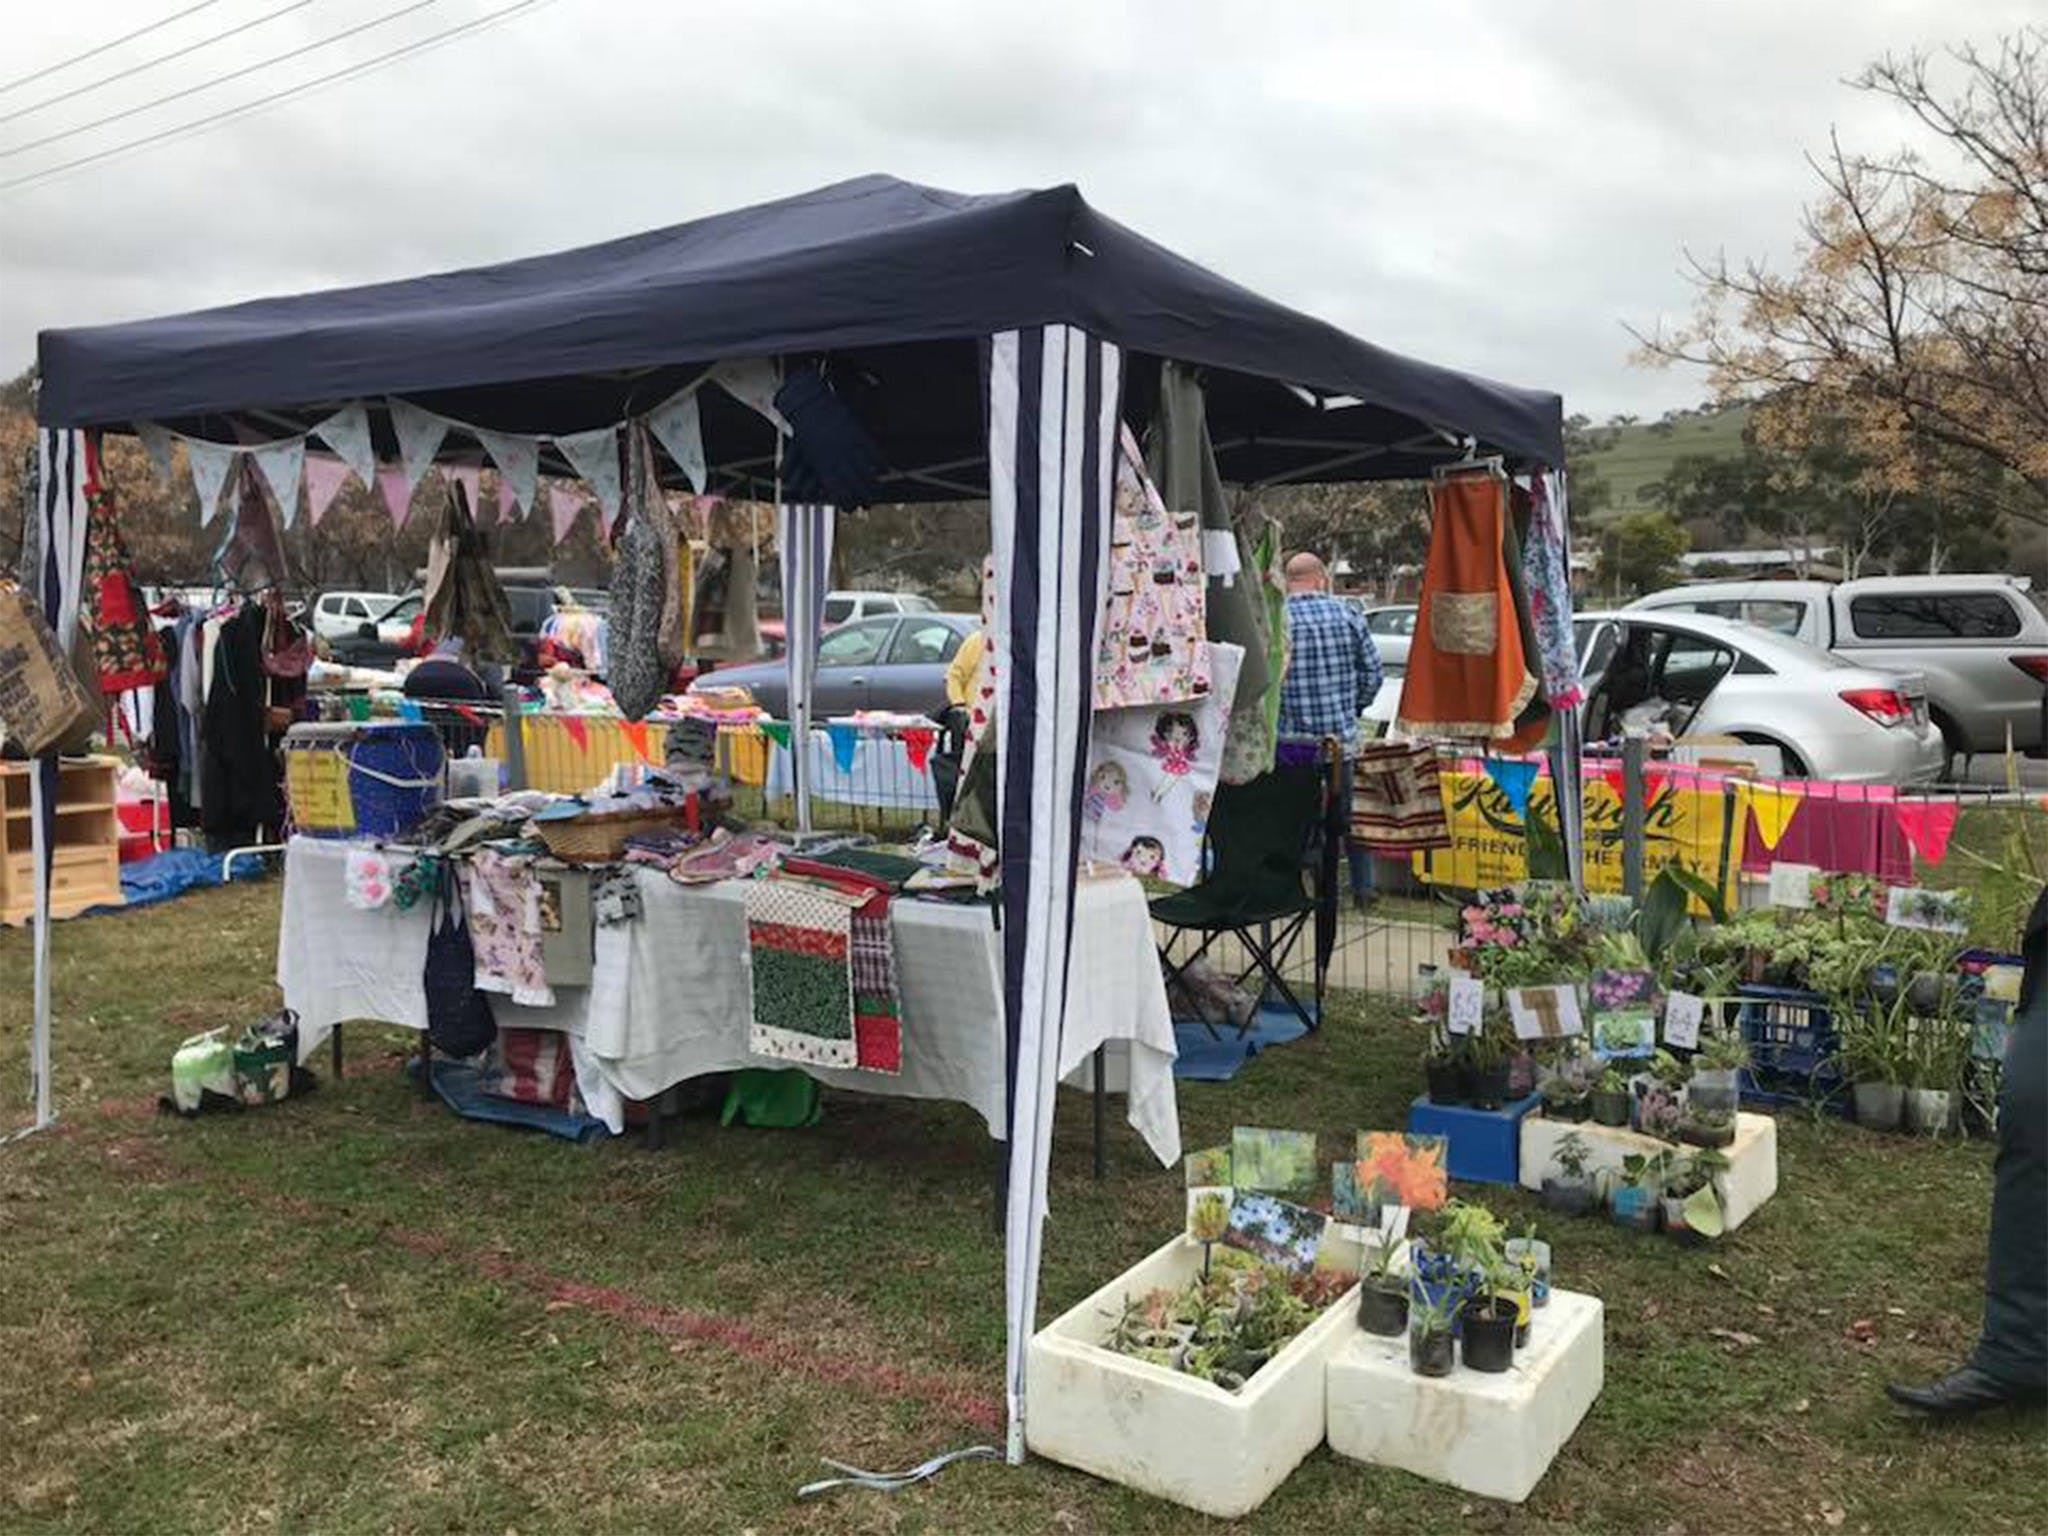 Perthville Village Fair - Accommodation Search